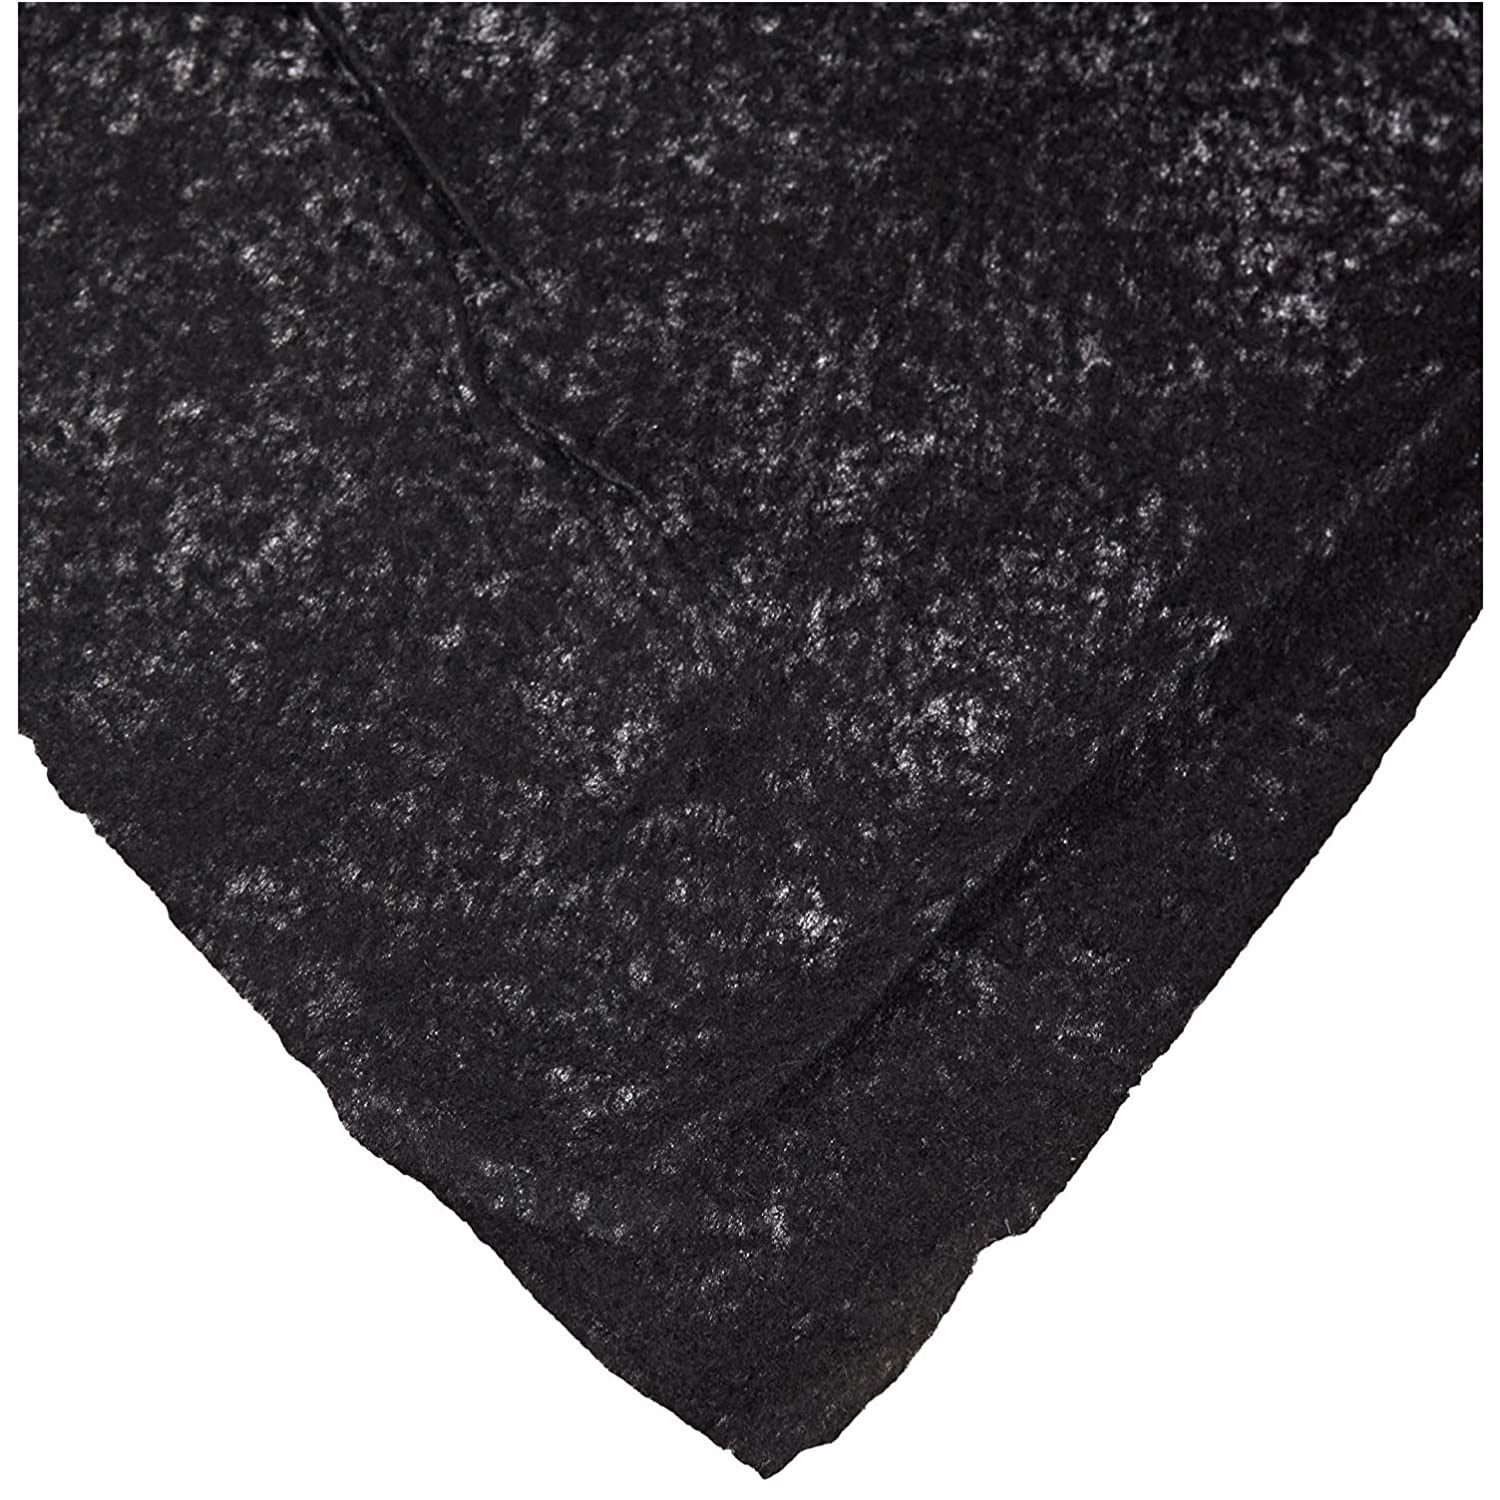 90 lbs Grab Tensile Strength Mutual NW35 Non Woven Geotextile Polypropylene Fabric Cut Roll 300 Length x 6 Width